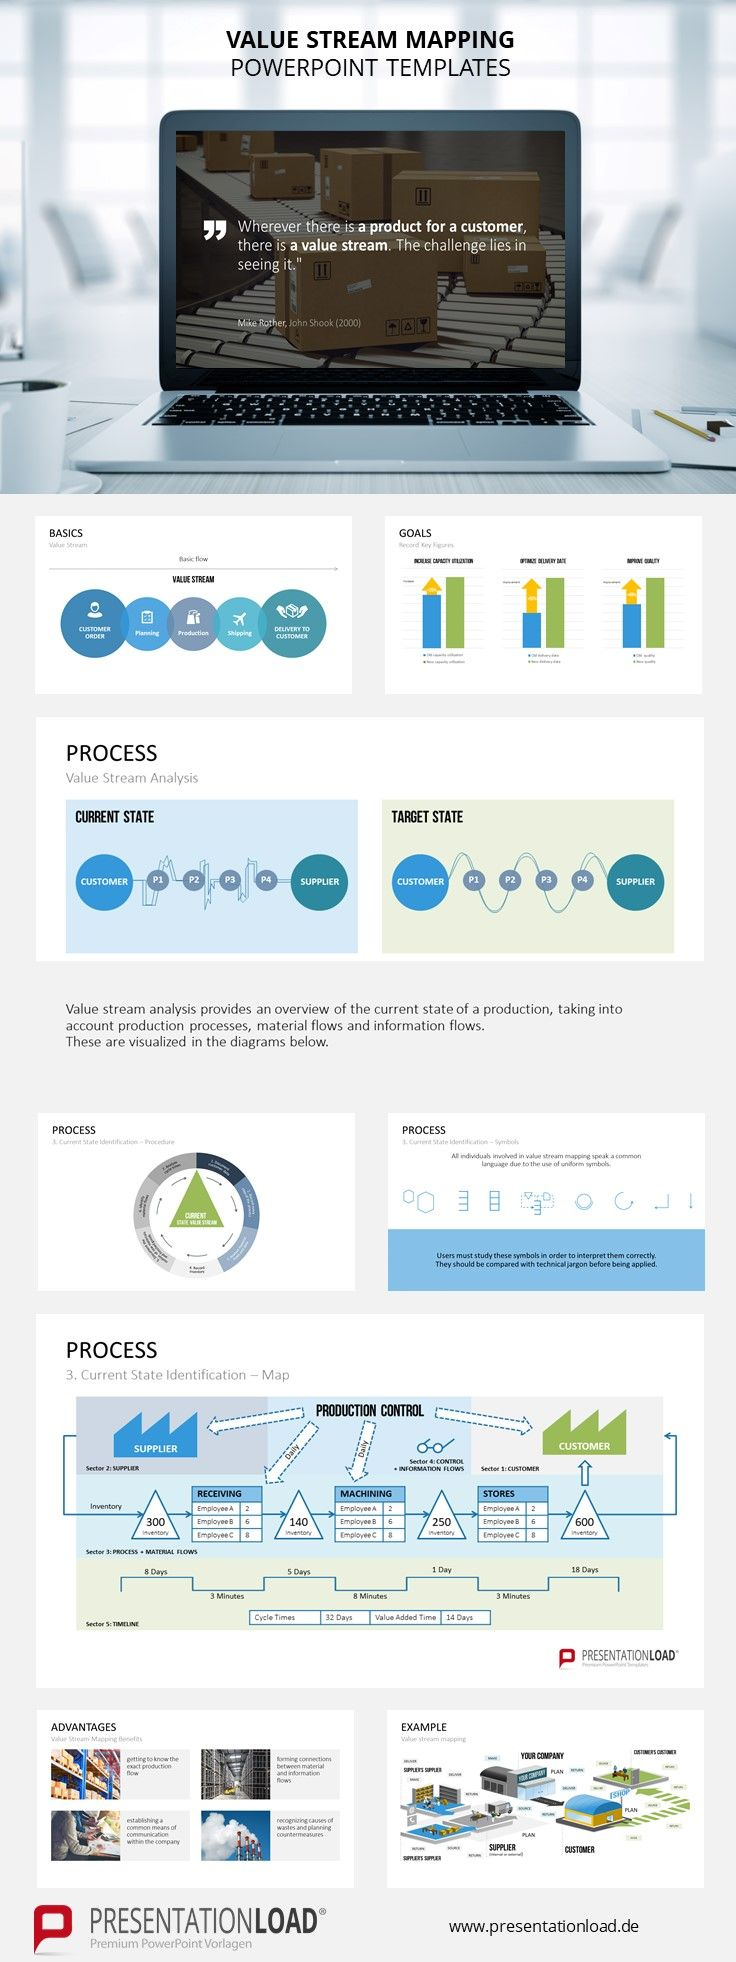 Illustrate The Current State Of Your Value Stream And Present New Ideas On Your Company S Value Stream And Value Stream Mapping Powerpoint Templates Templates Value stream mapping template powerpoint